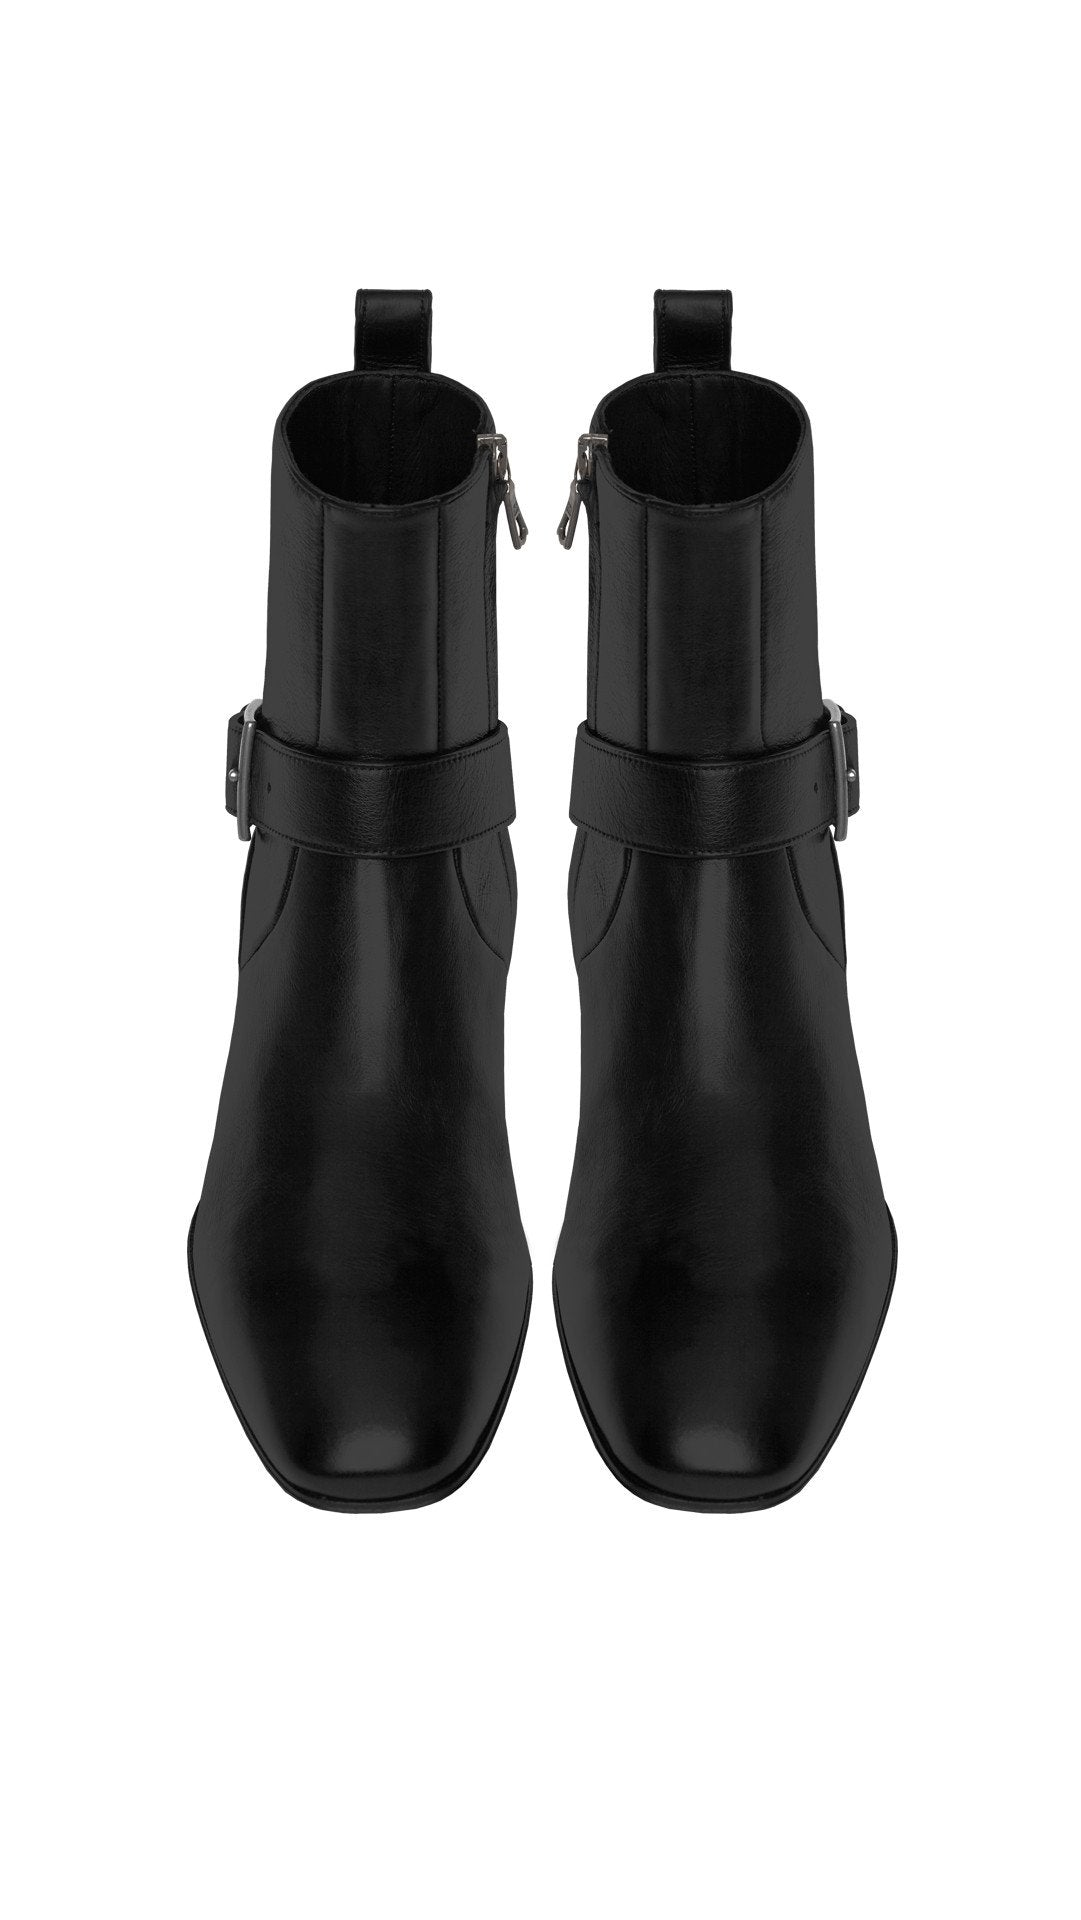 Zipped Strap Boot - Matte Black Leather